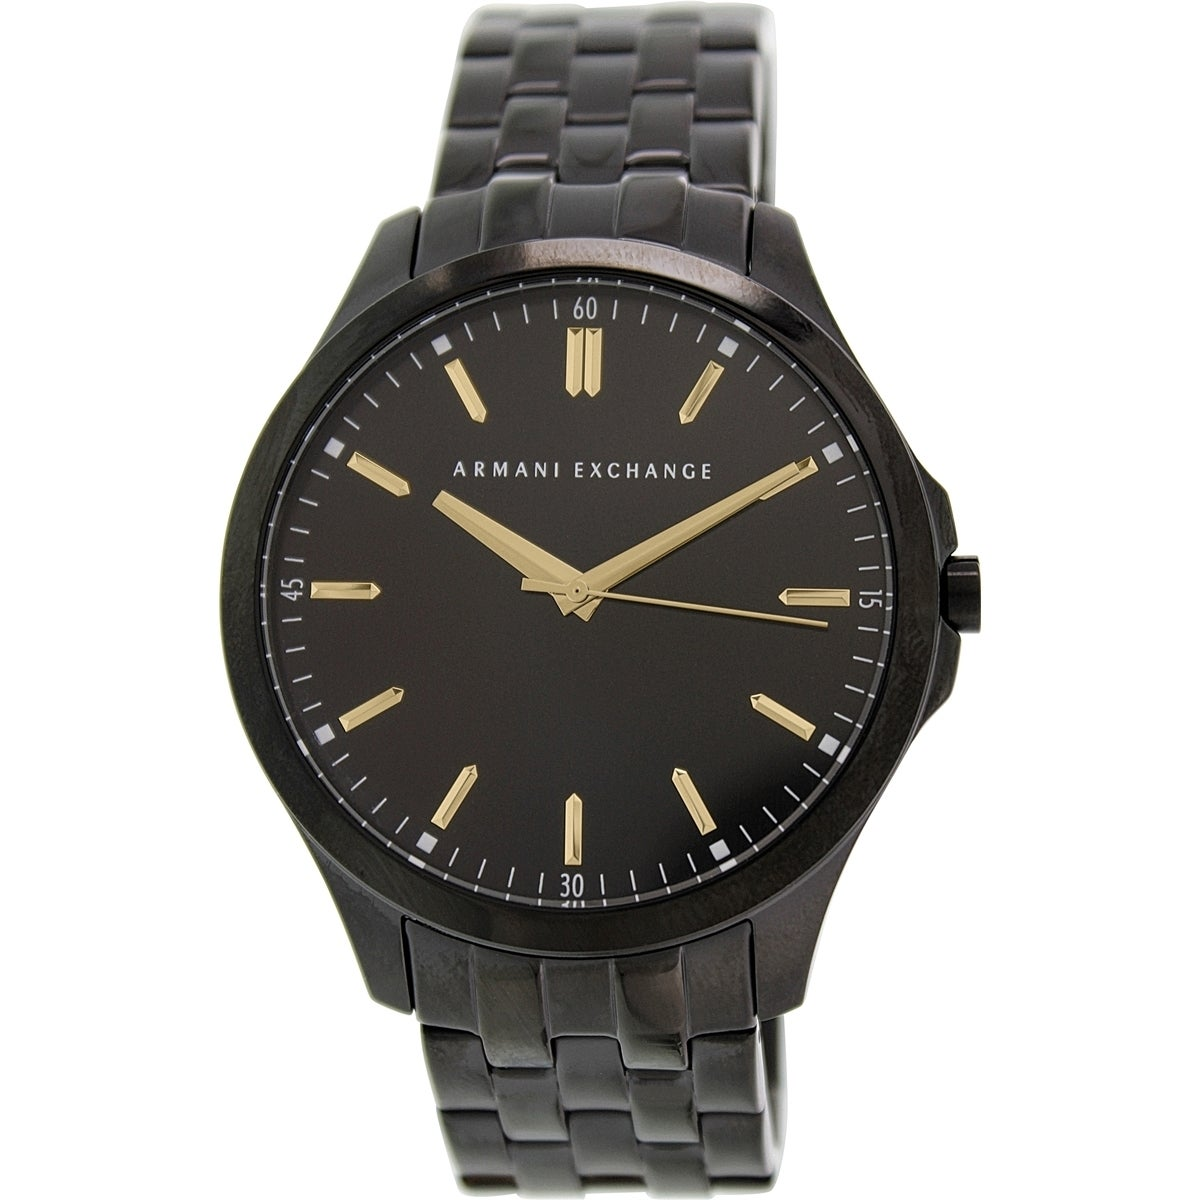 a7b47193bab1 Shop Armani Exchange Men s AX2144 Black Stainless Steel Quartz Watch - Free  Shipping Today - Overstock - 9954455